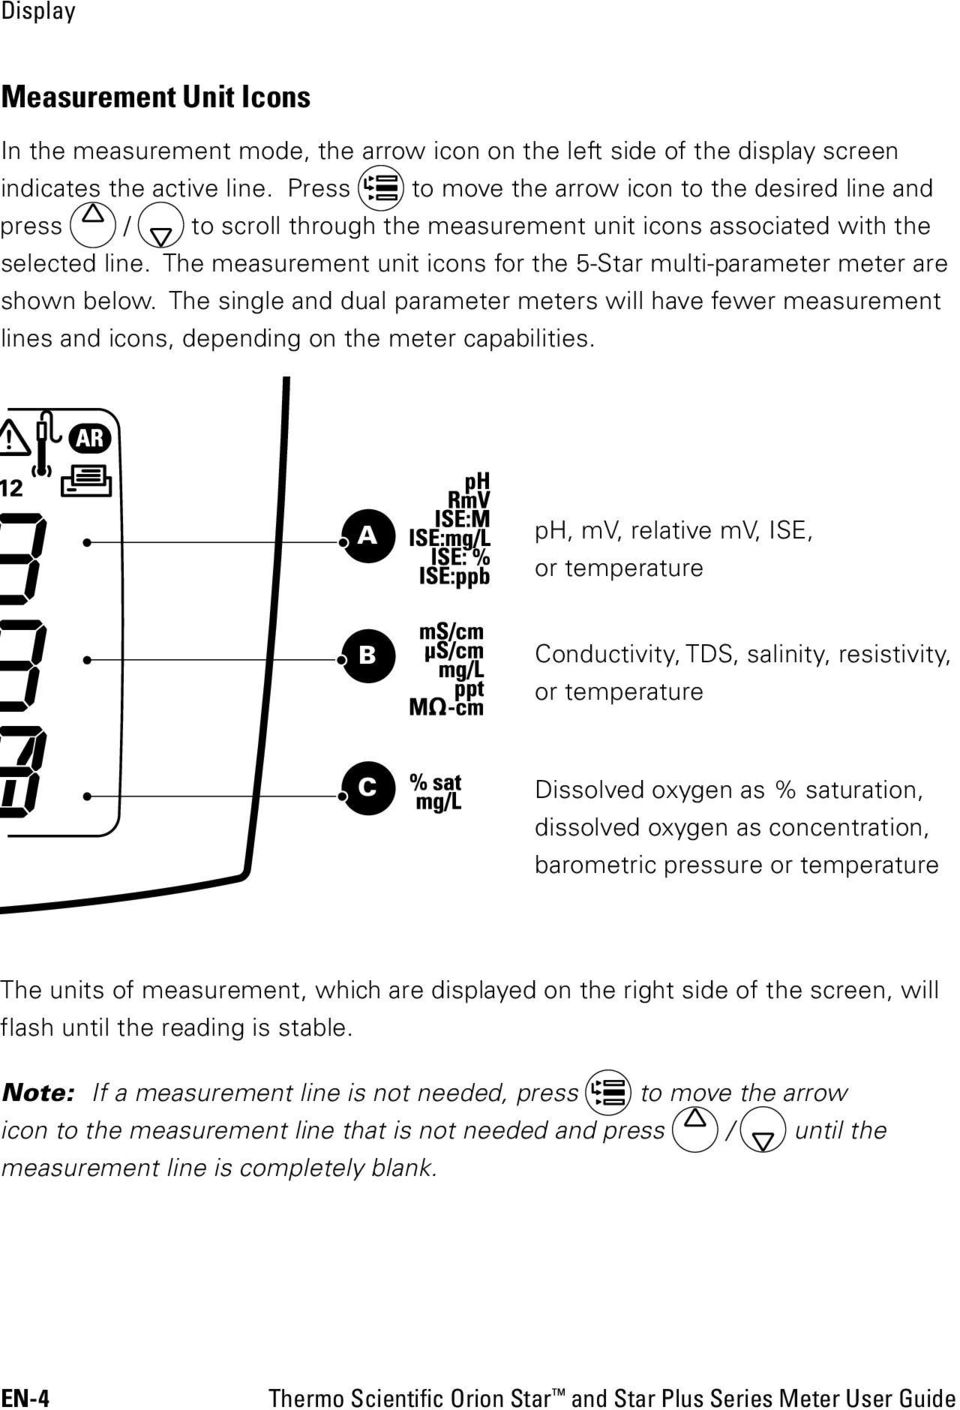 The measurement unit icons for the 5-Star multi-parameter meter are shown below. The single and dual parameter meters will have fewer measurement lines and icons, depending on the meter capabilities.